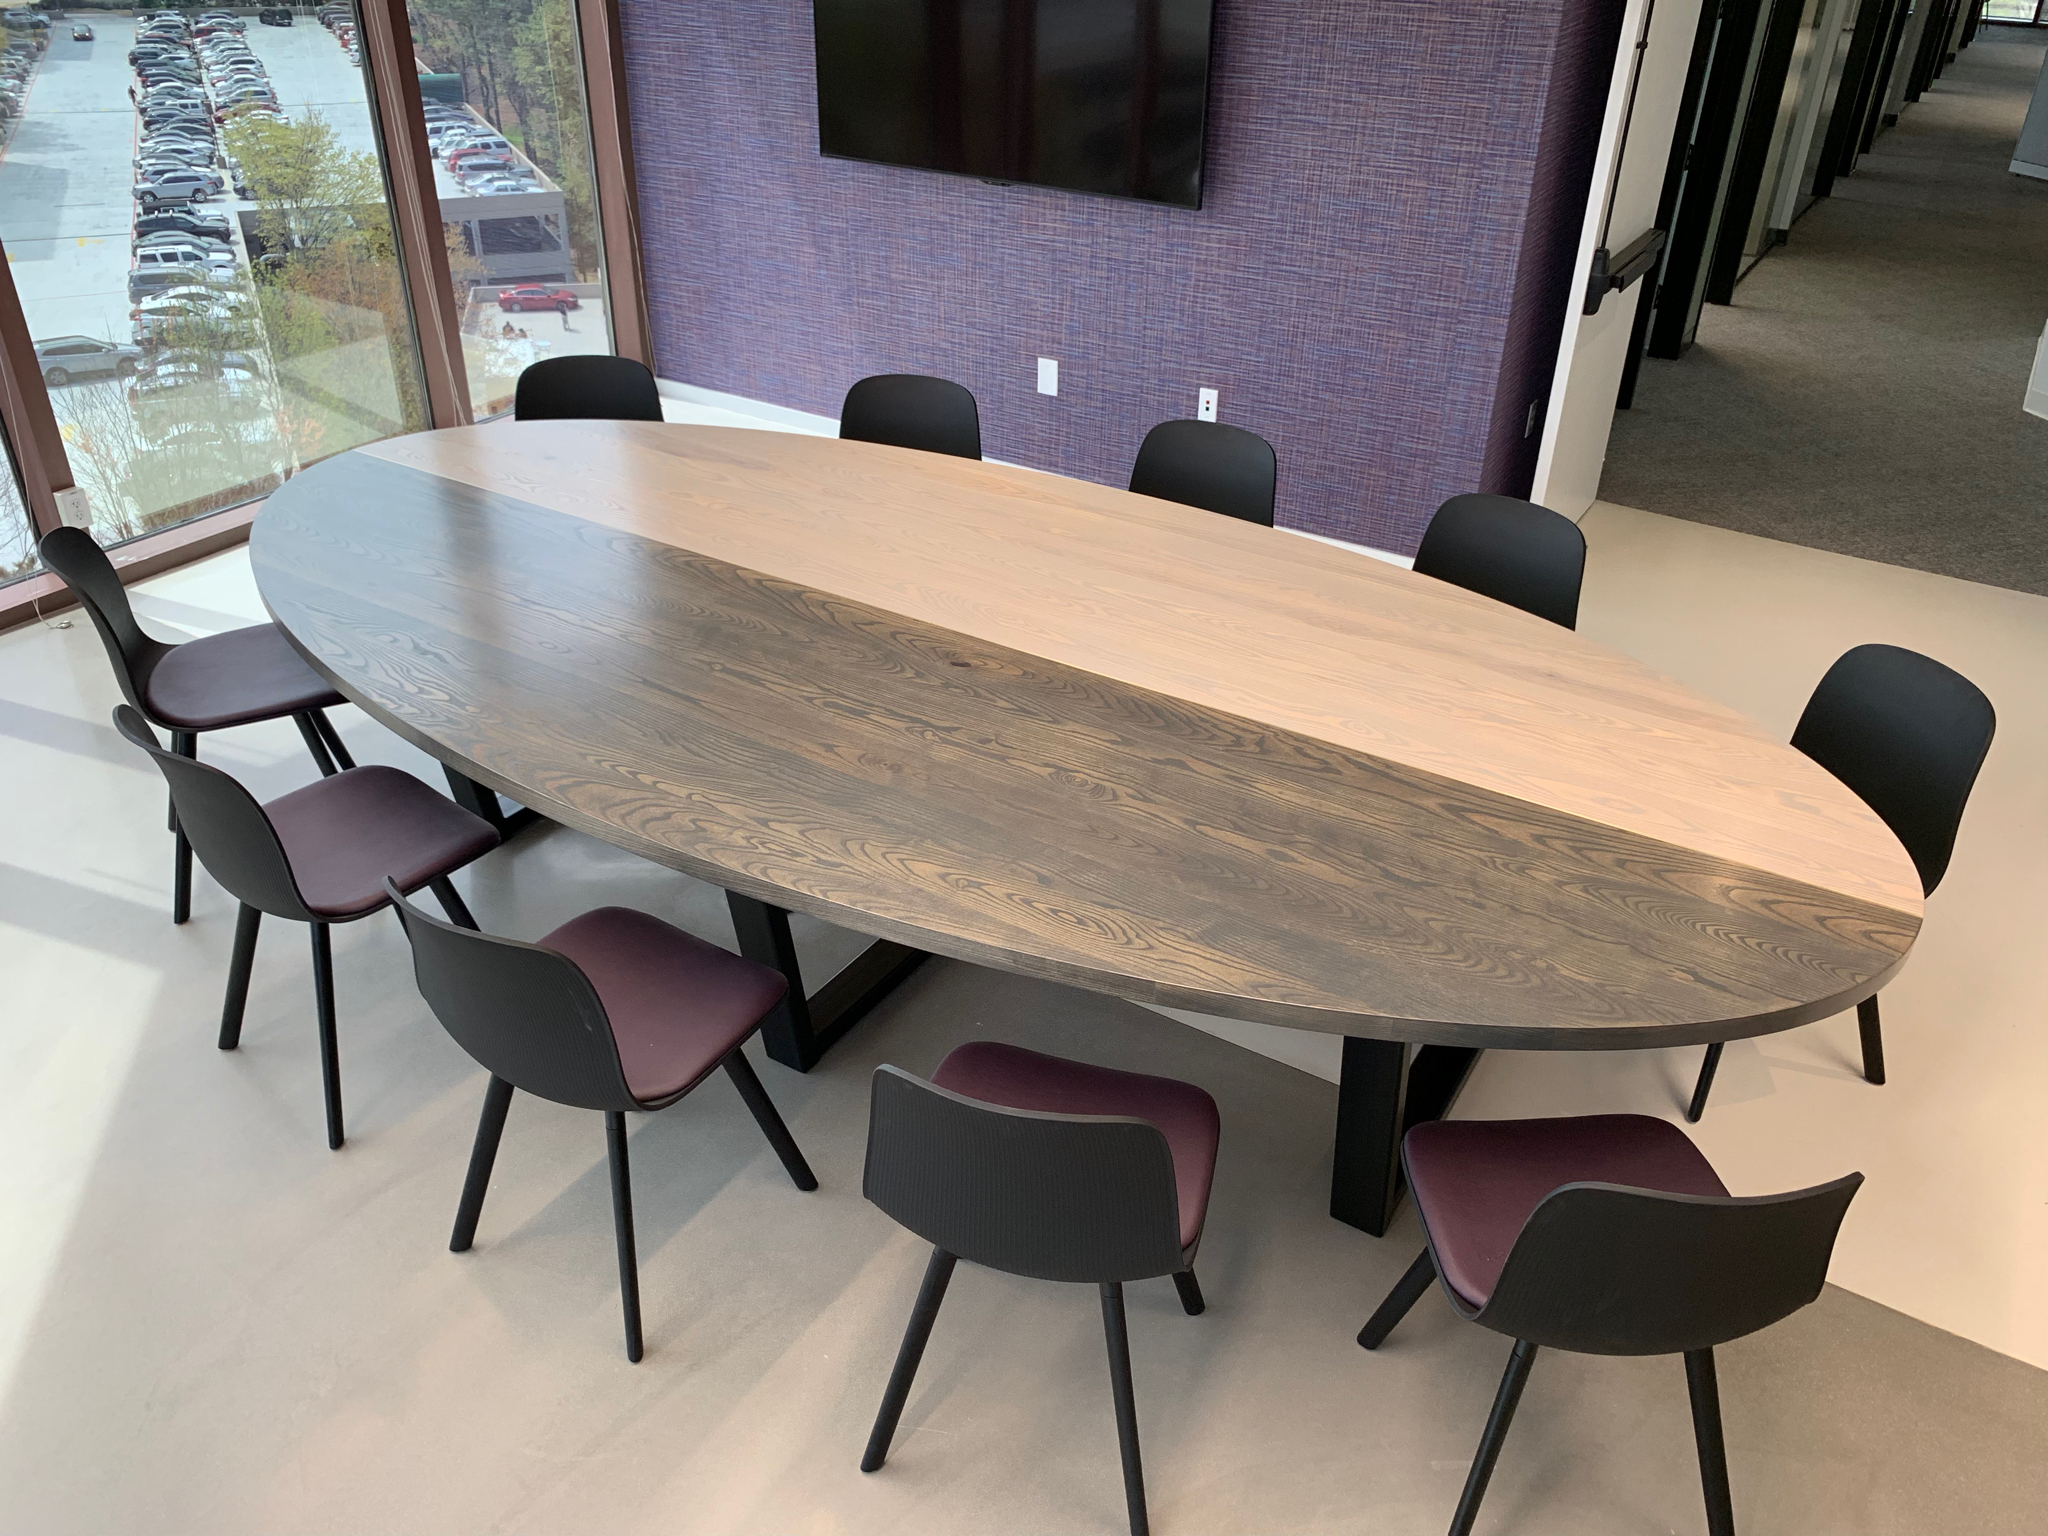 Jack Ellis Company Custom Oval Break room / Conference table